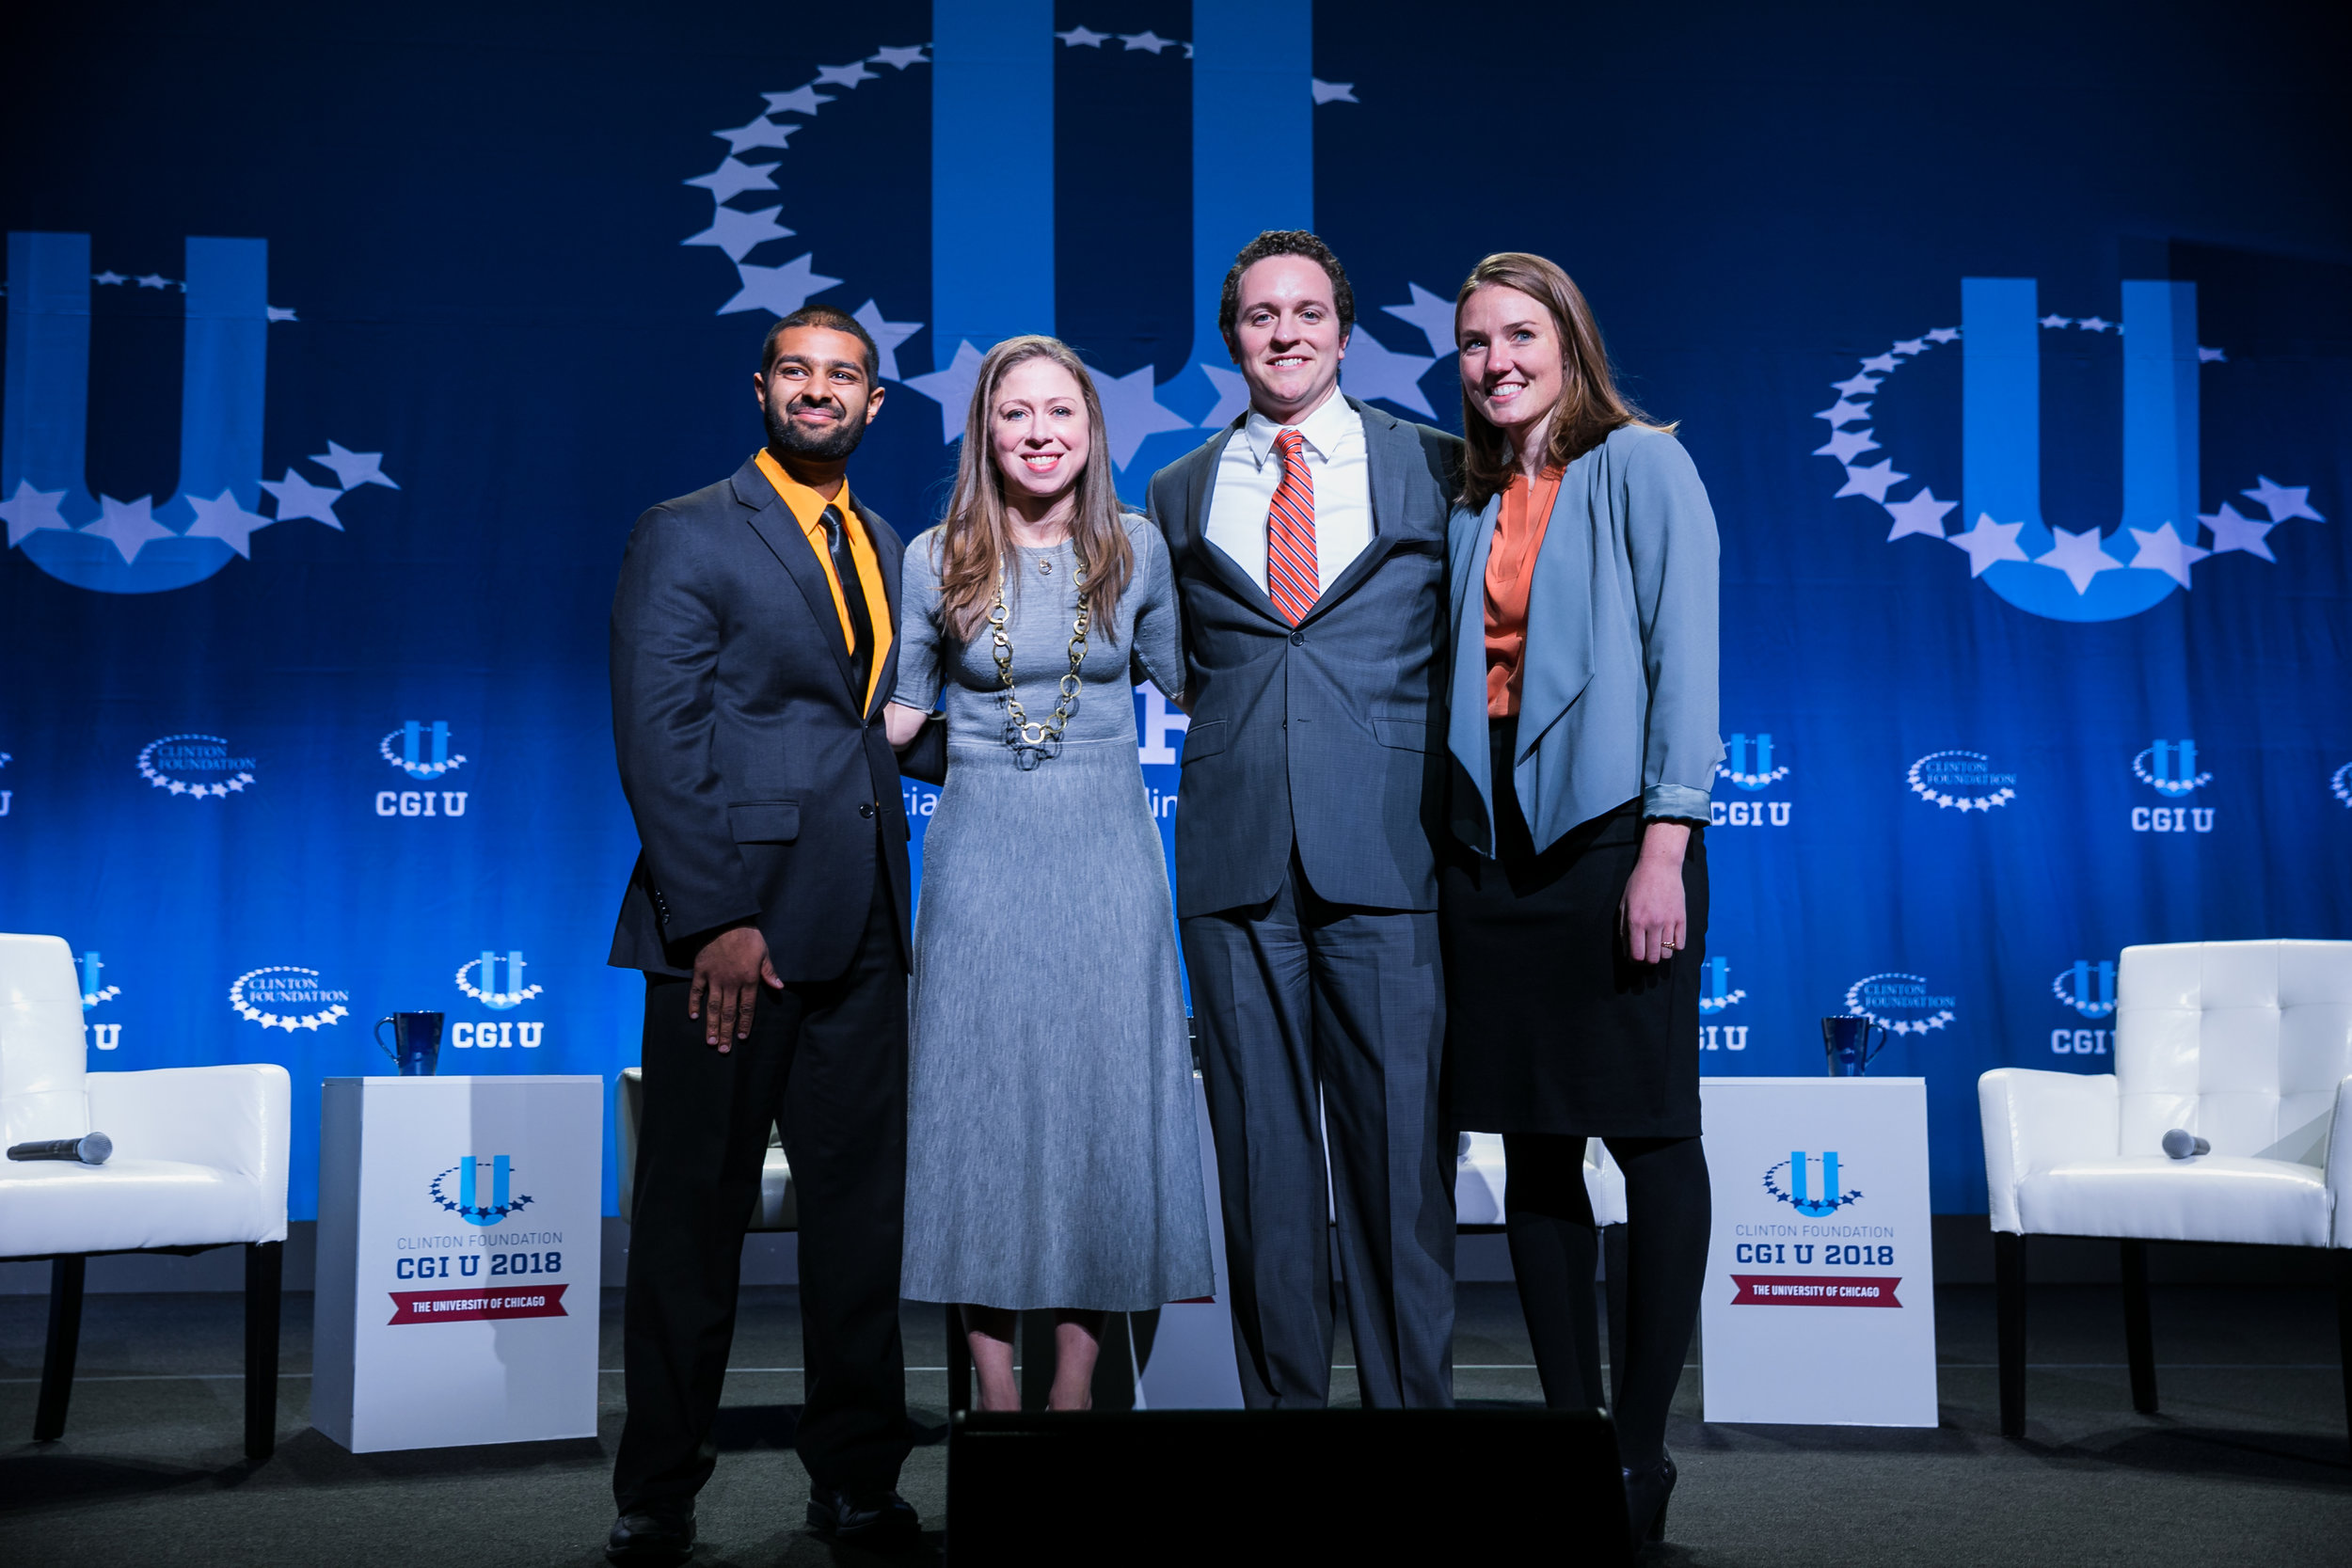 The Meaningfull Meals Team with Chelsea Clinton at a Clinton Global Initiative event